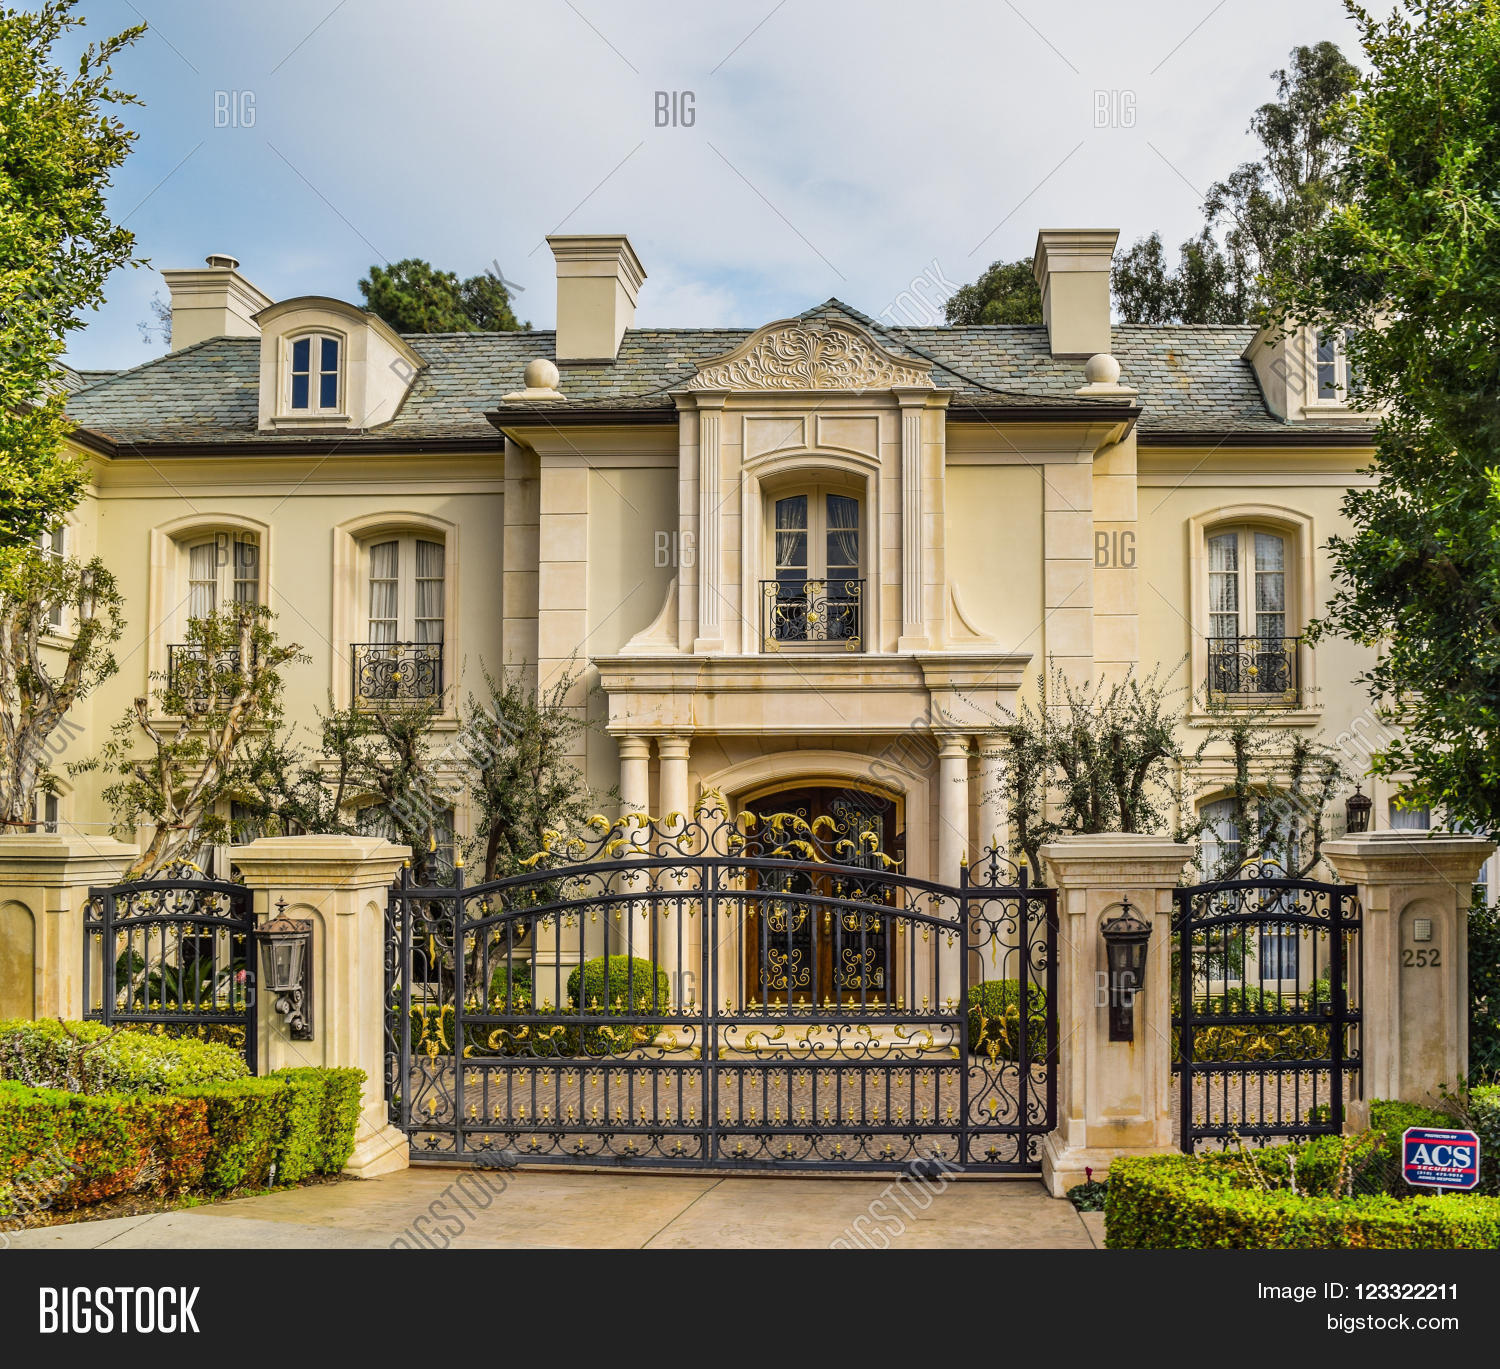 Beverly hills ca usa january 16 image photo bigstock for Beautiful homes and great estates pictures